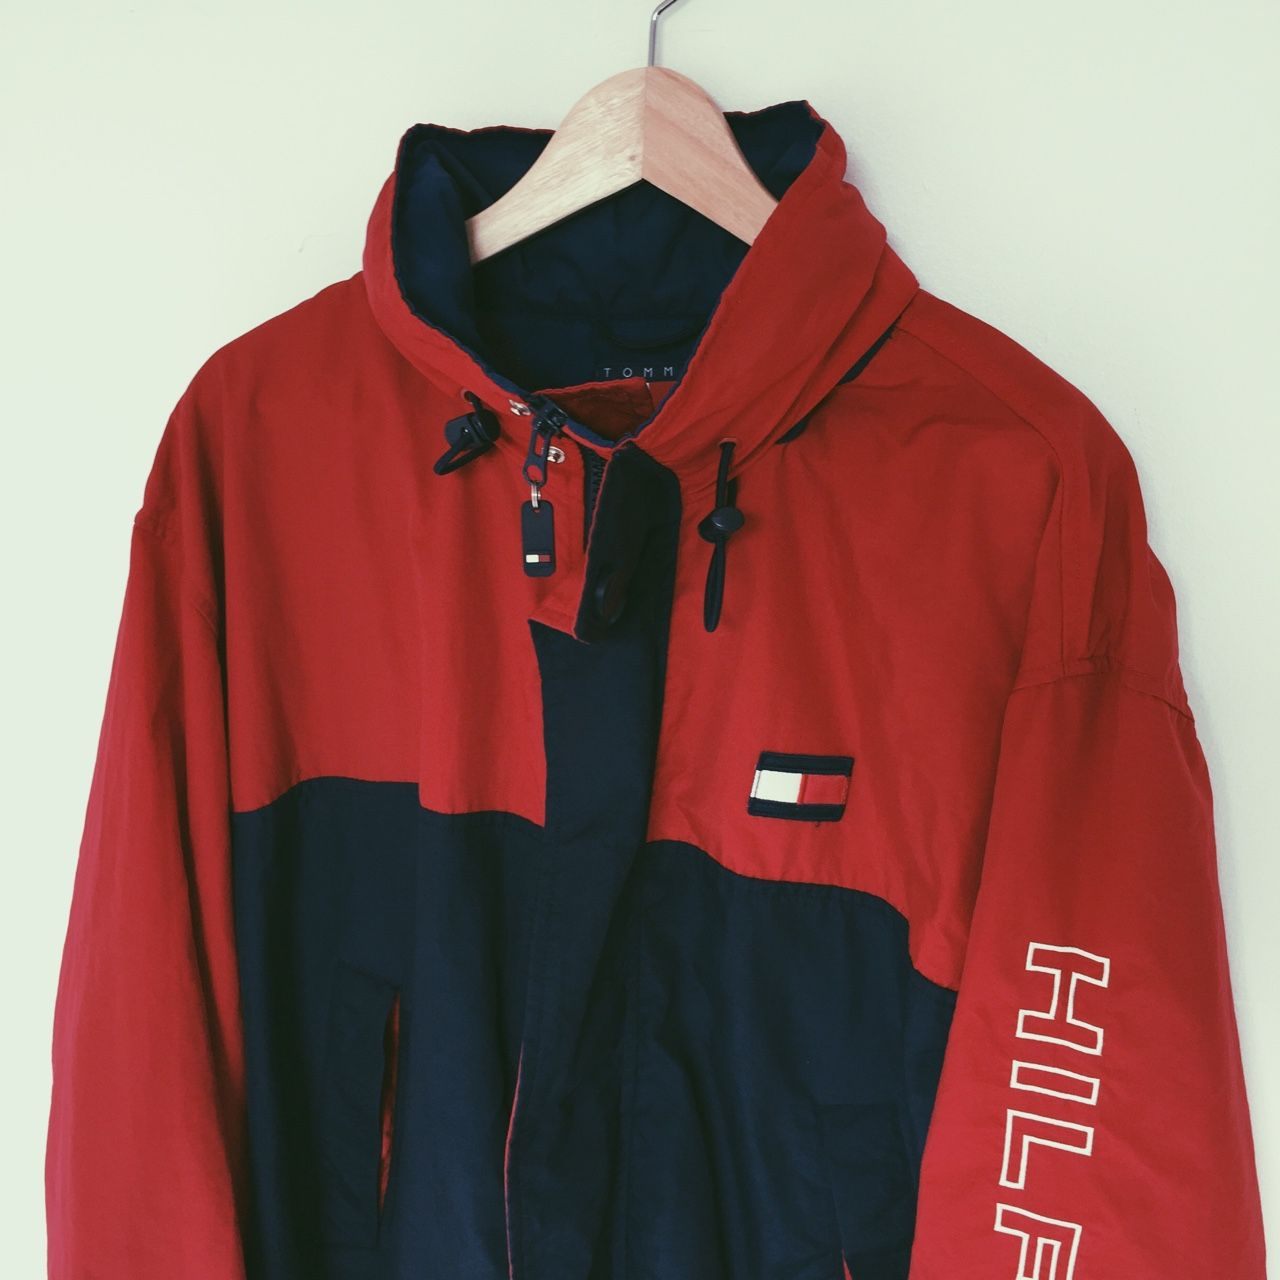 dbc2872177cadb Listed on Depop by mellowhill | Discovered on Depop | Tommy hilfiger ...